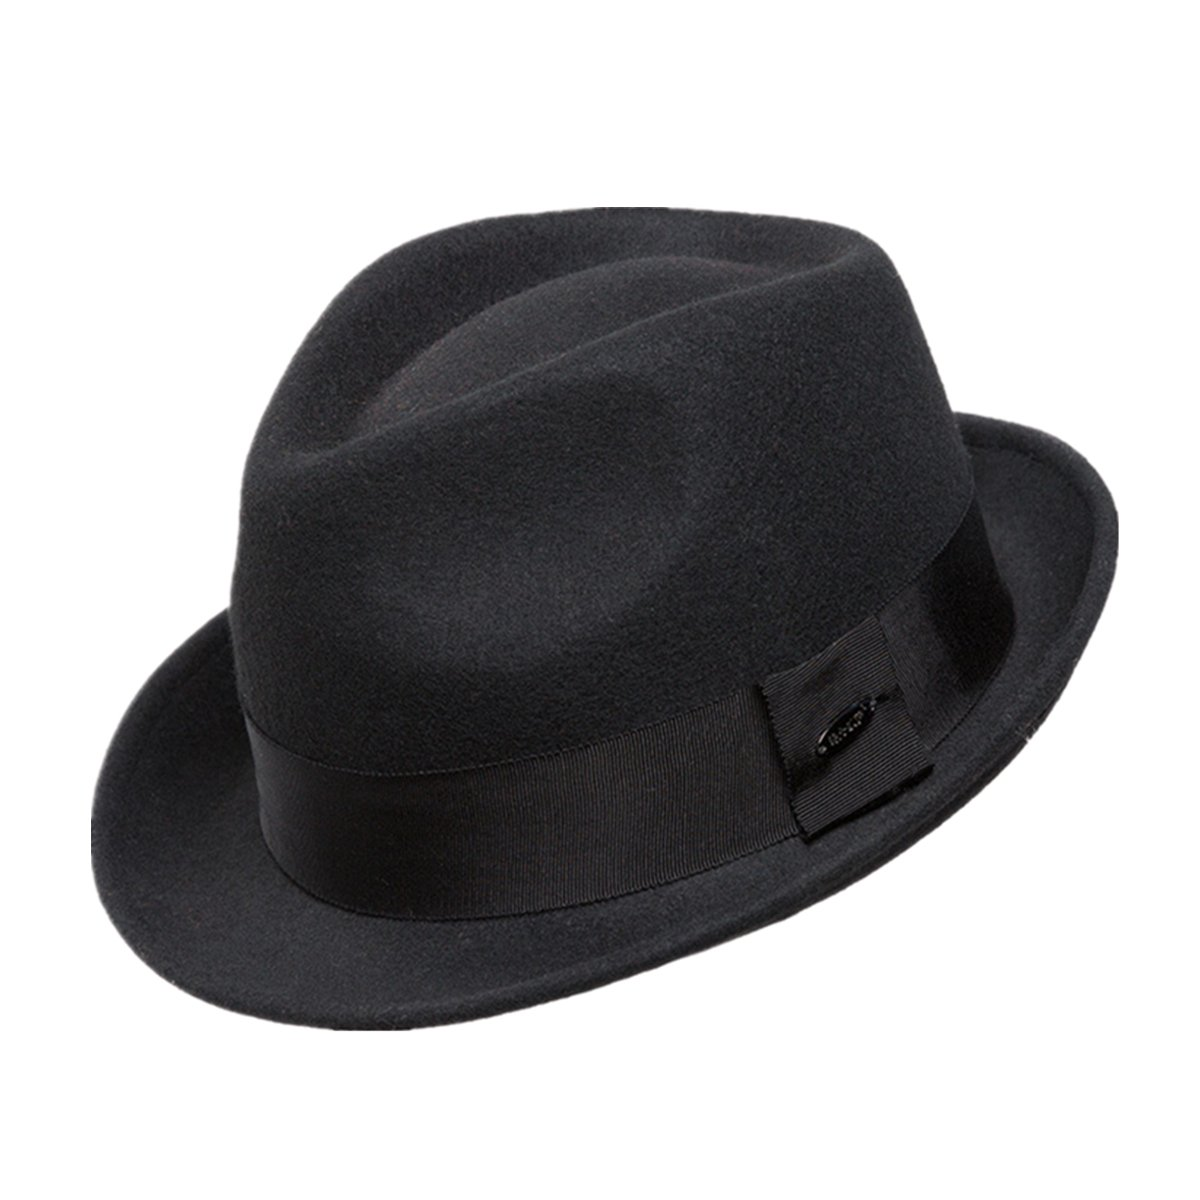 6356503110b Home Prefer Men s Wool Felt Winter Hat Short Brim Fedora Hat at Amazon  Men s Clothing store